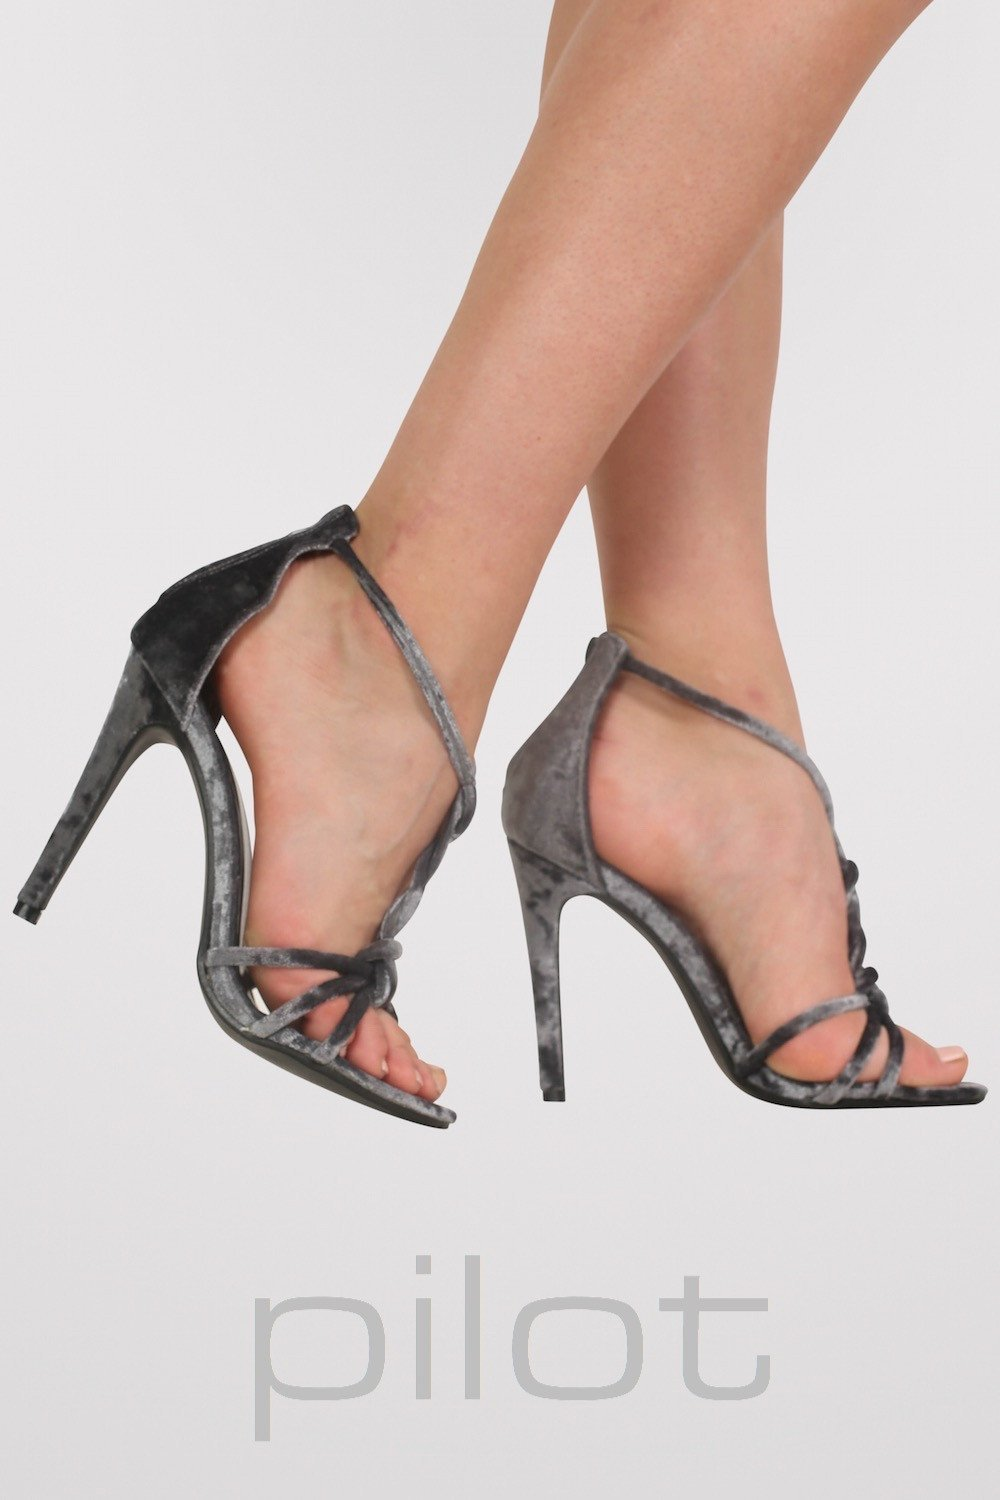 Velvet Twist Strap Slinky High Heel Sandals in Grey 0